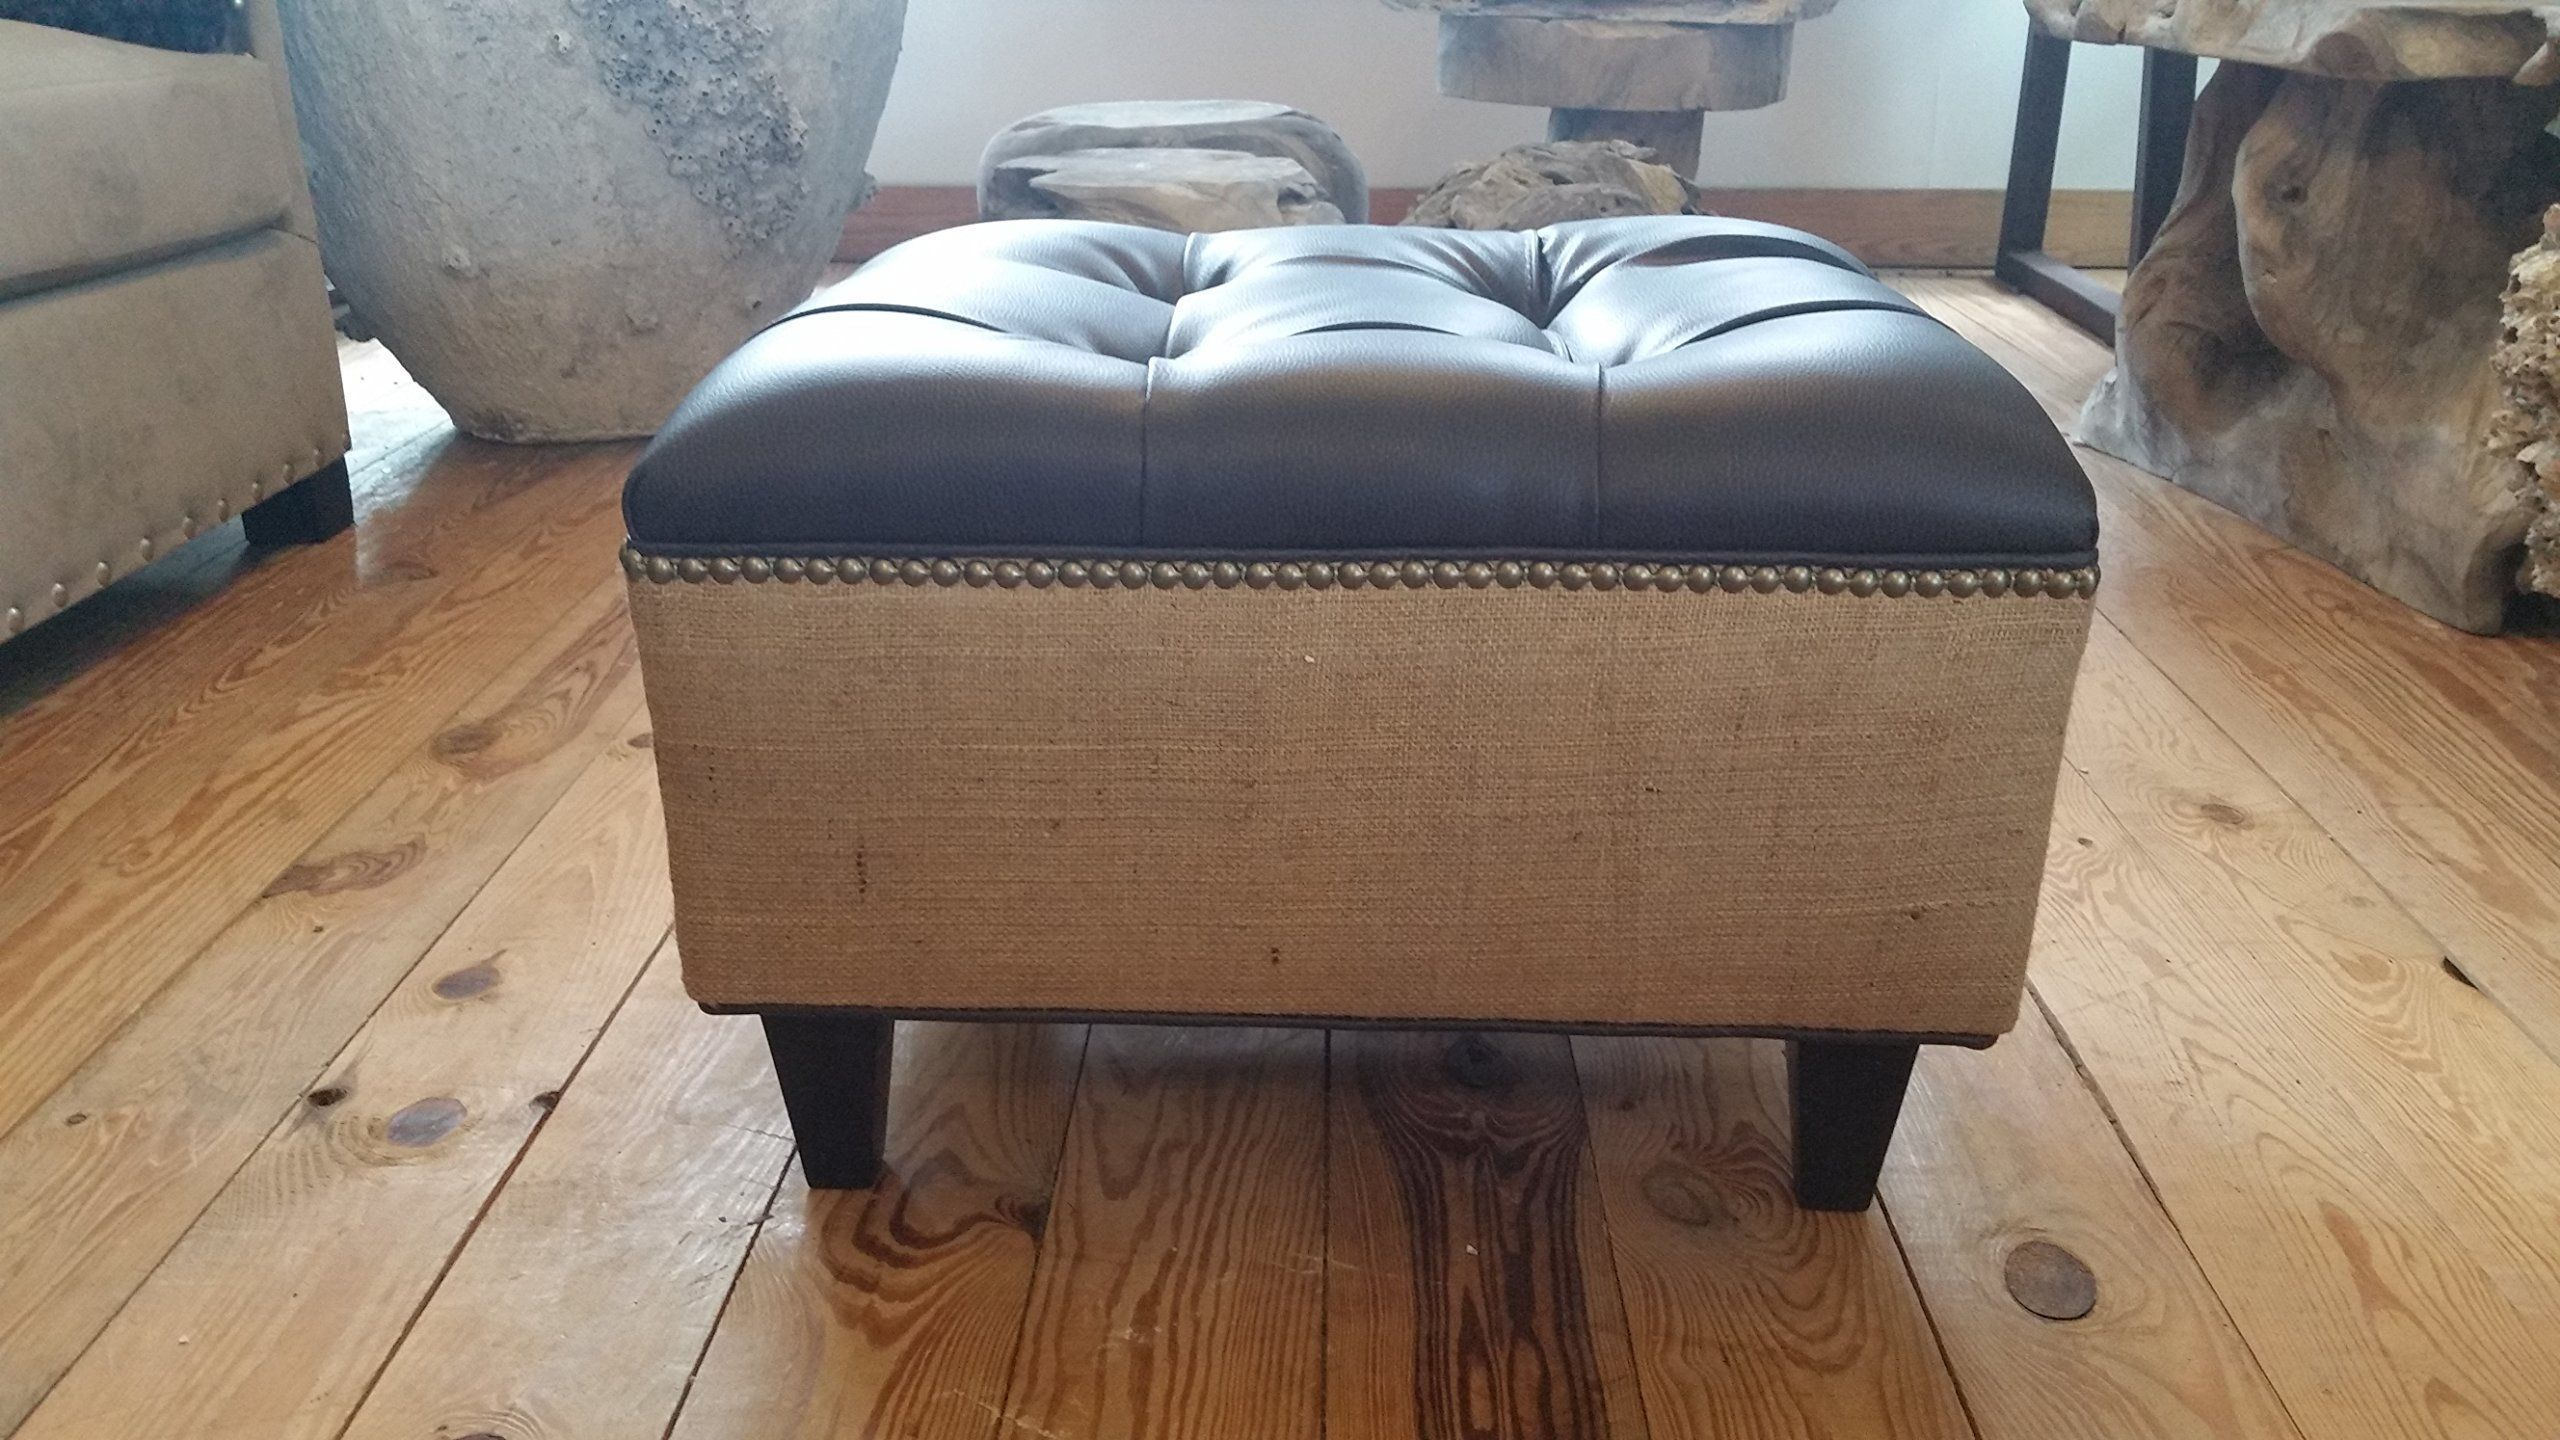 Living Room Furniture Made In The Usa 24 Tufted Vegan Leather And Burlap Ottoman Artisan Made In The